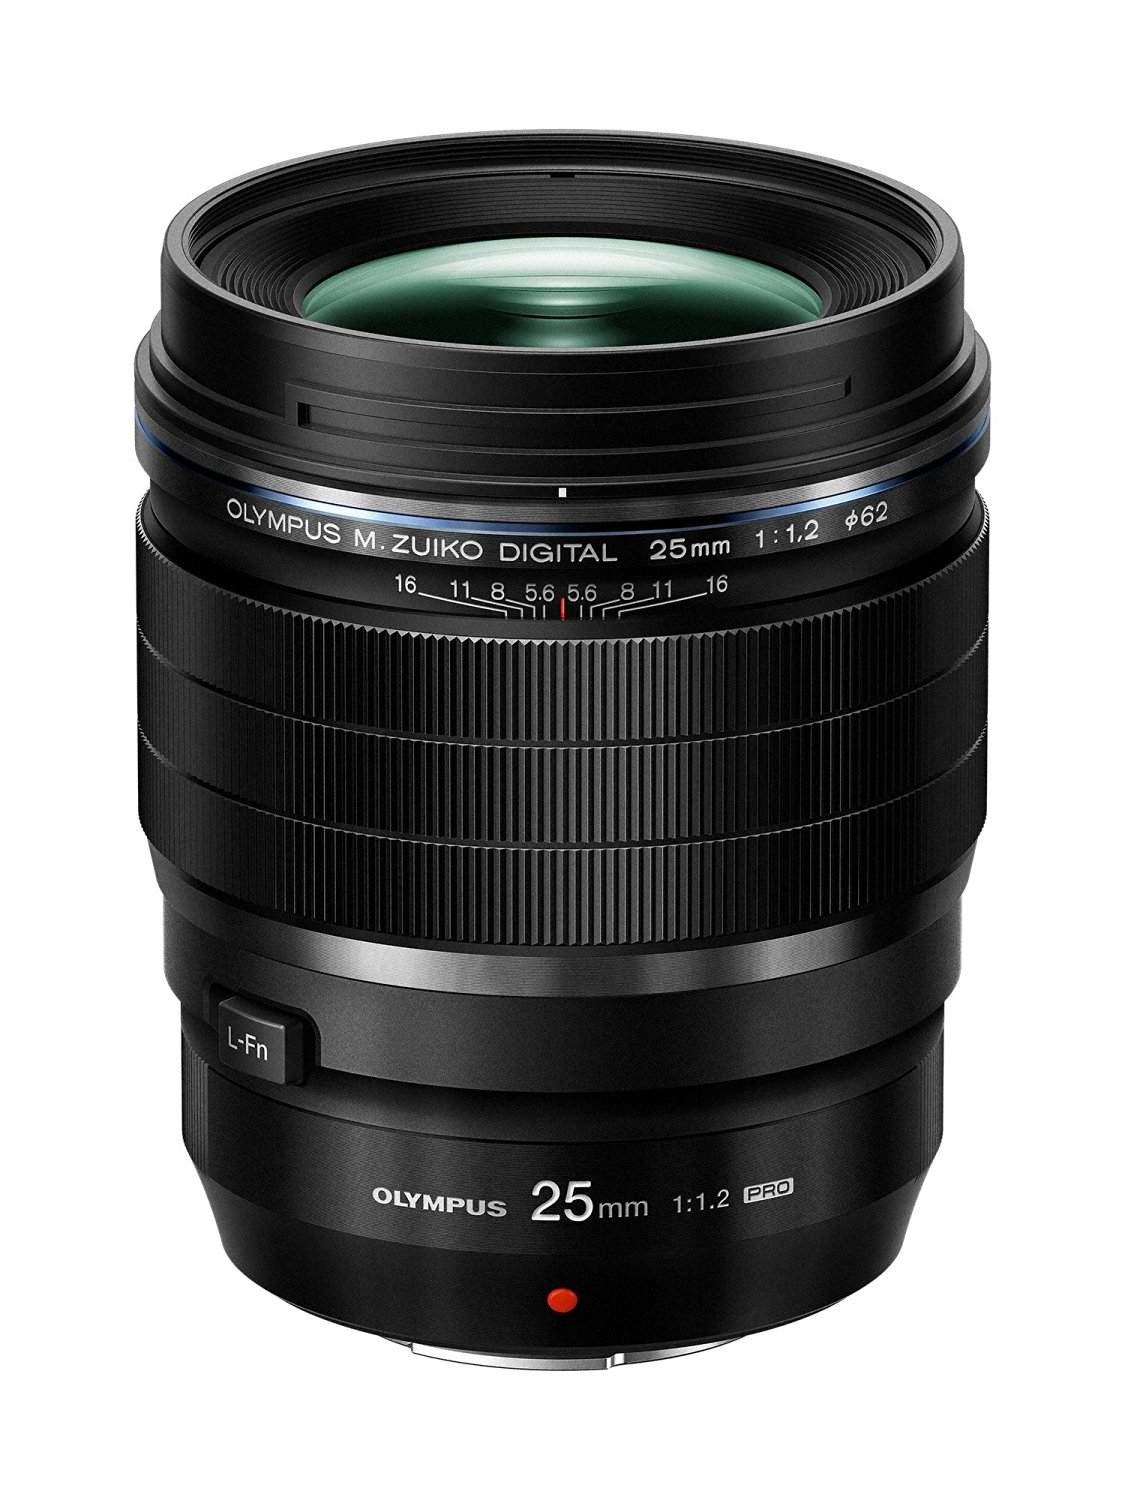 amazon product image of the front of the olympus 25mm f2